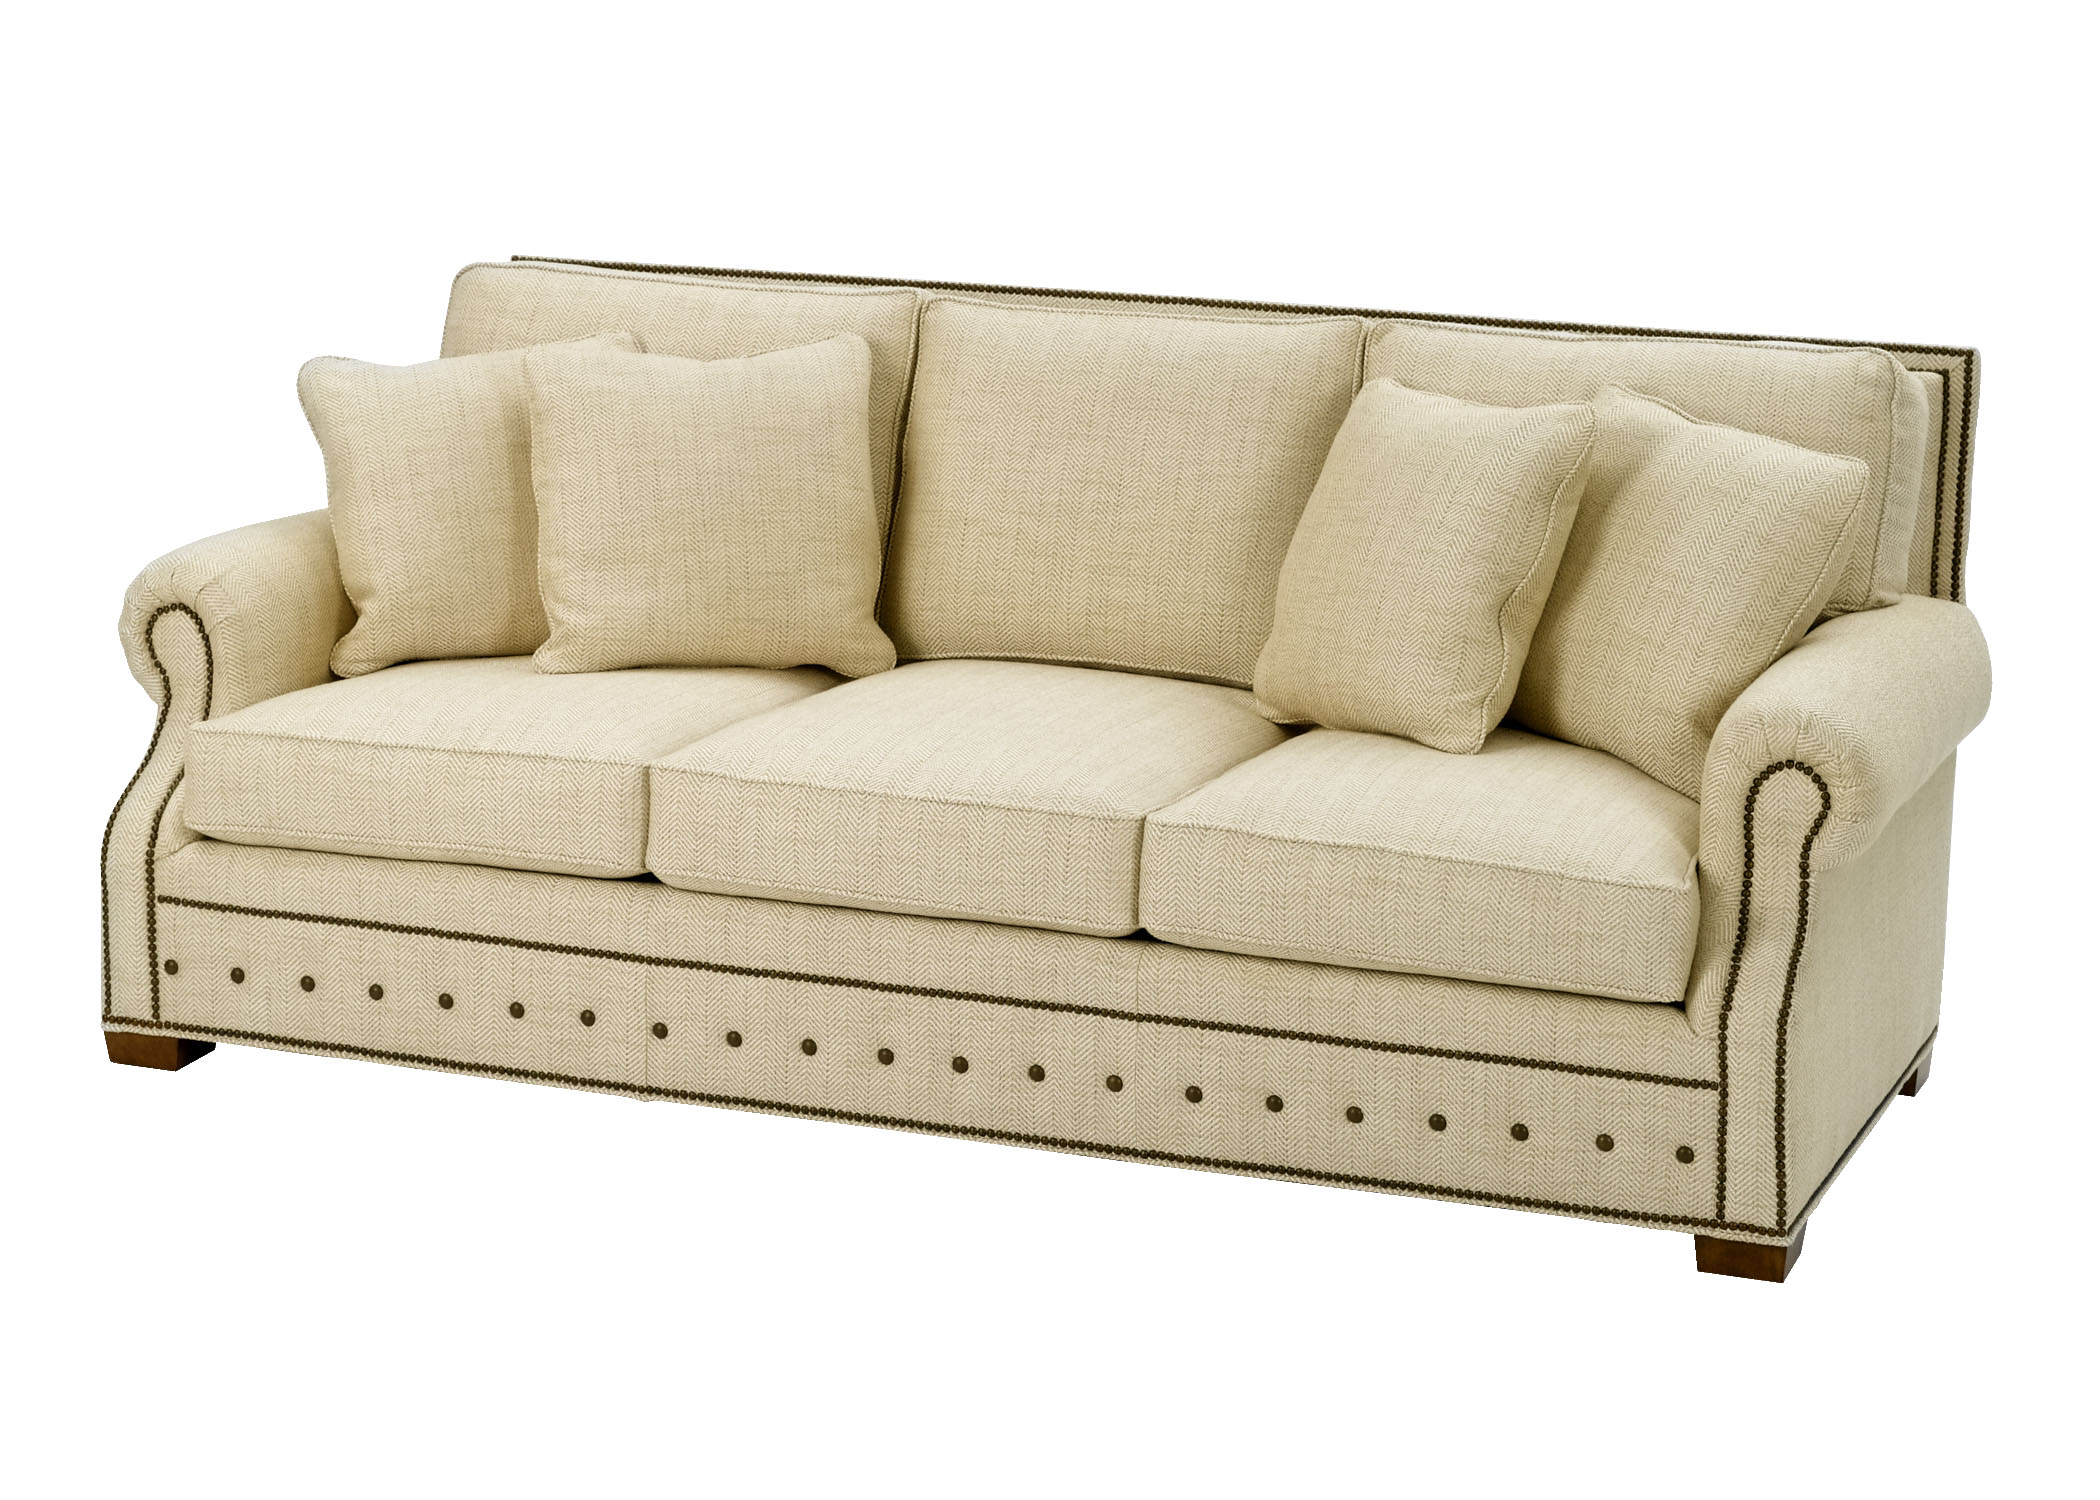 Wesley hall sofa wesley hall sofa construction wesley for Living hall furniture